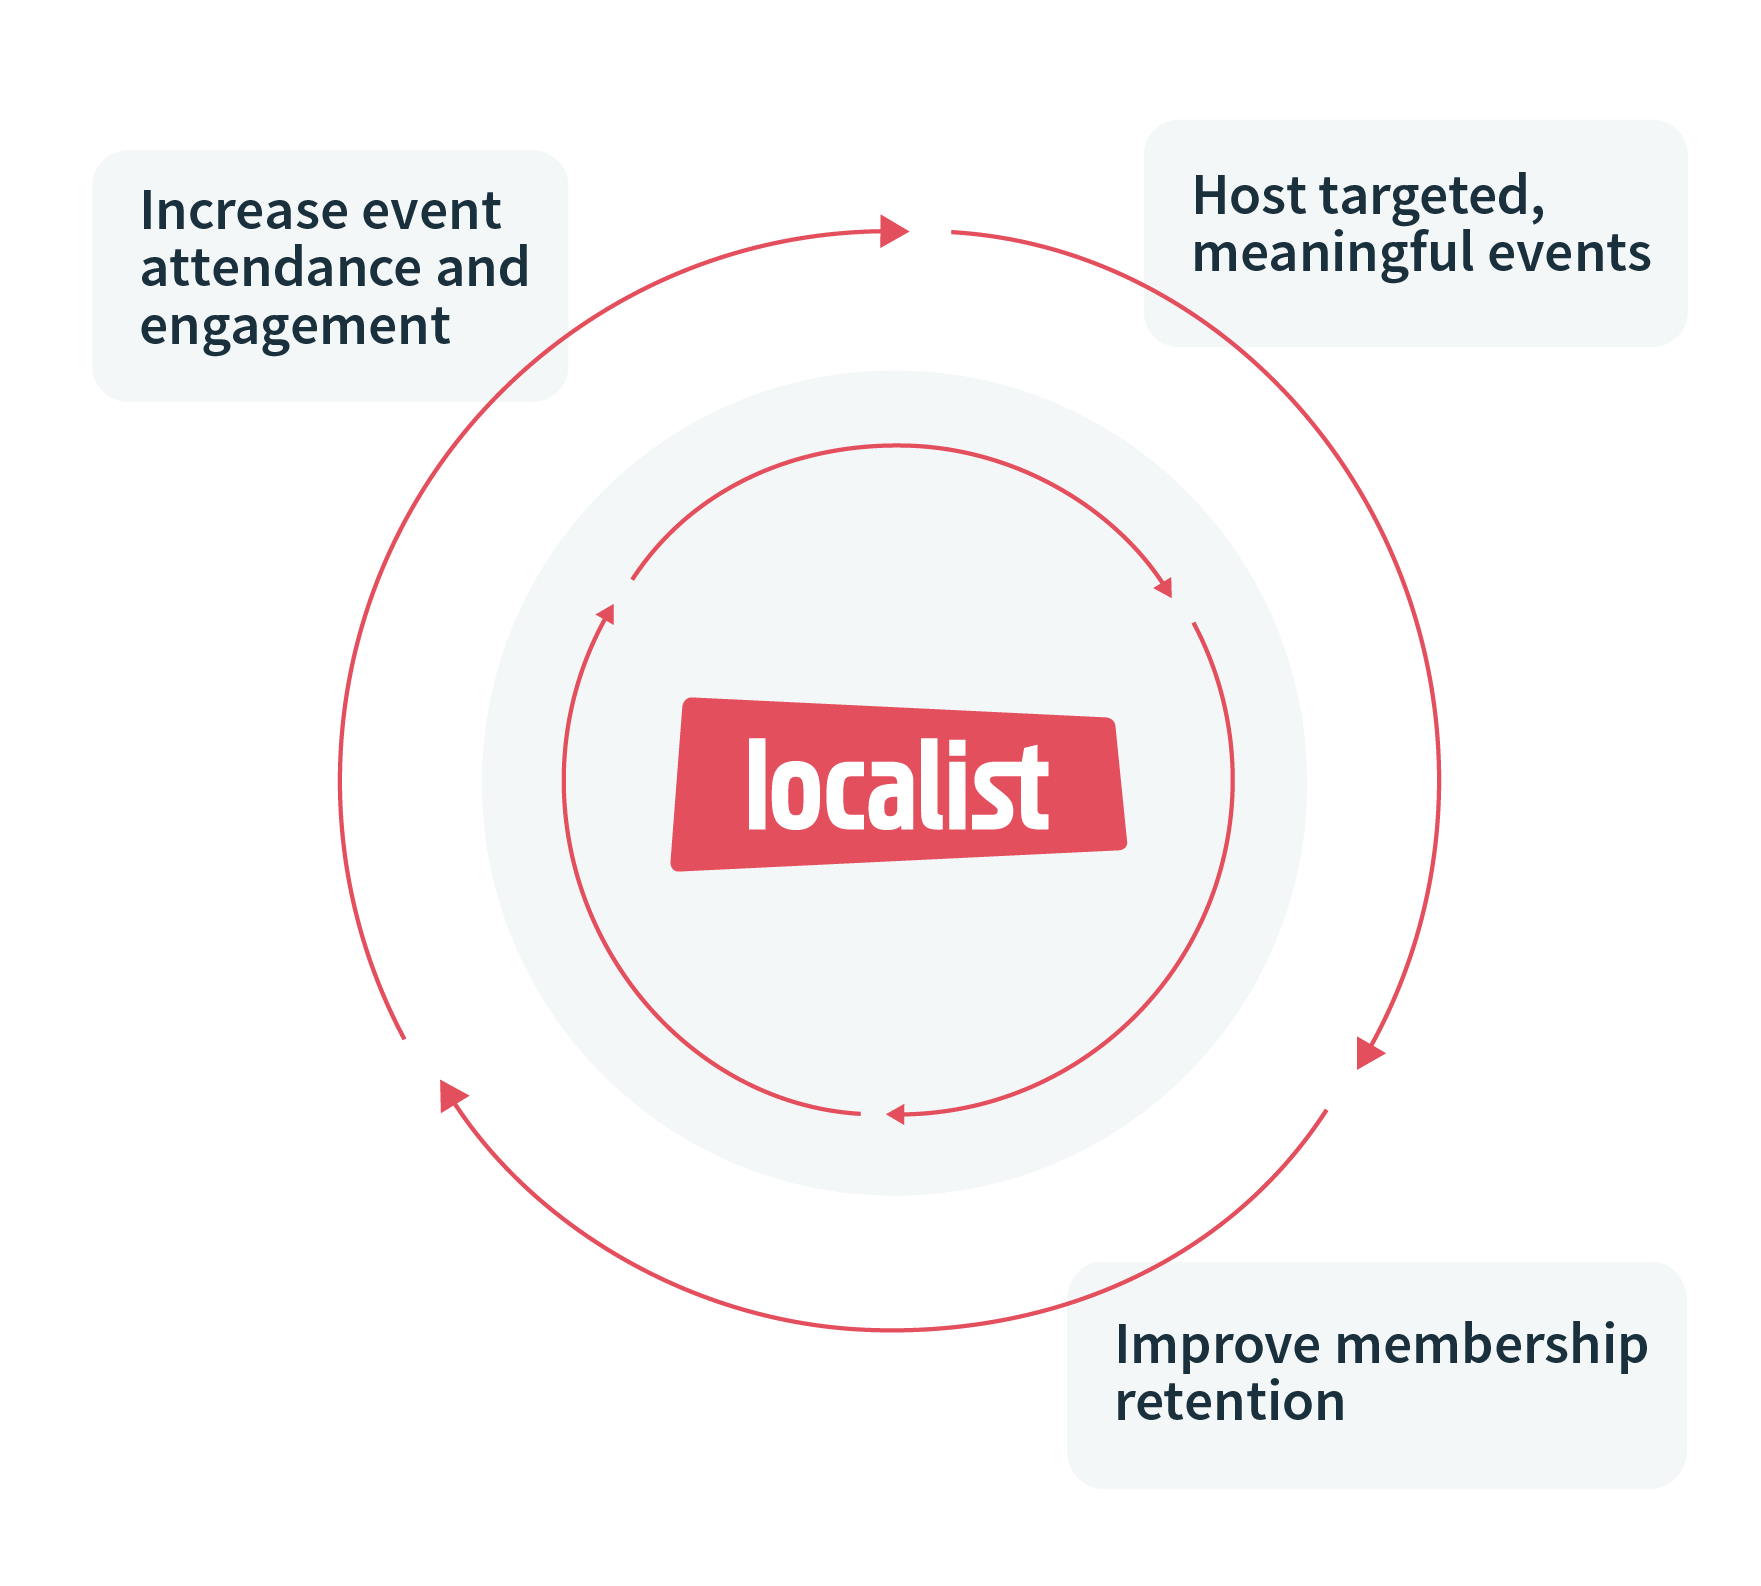 Improve membership retention by increasing event attendance and engagement and hosting targeted, meaningful events